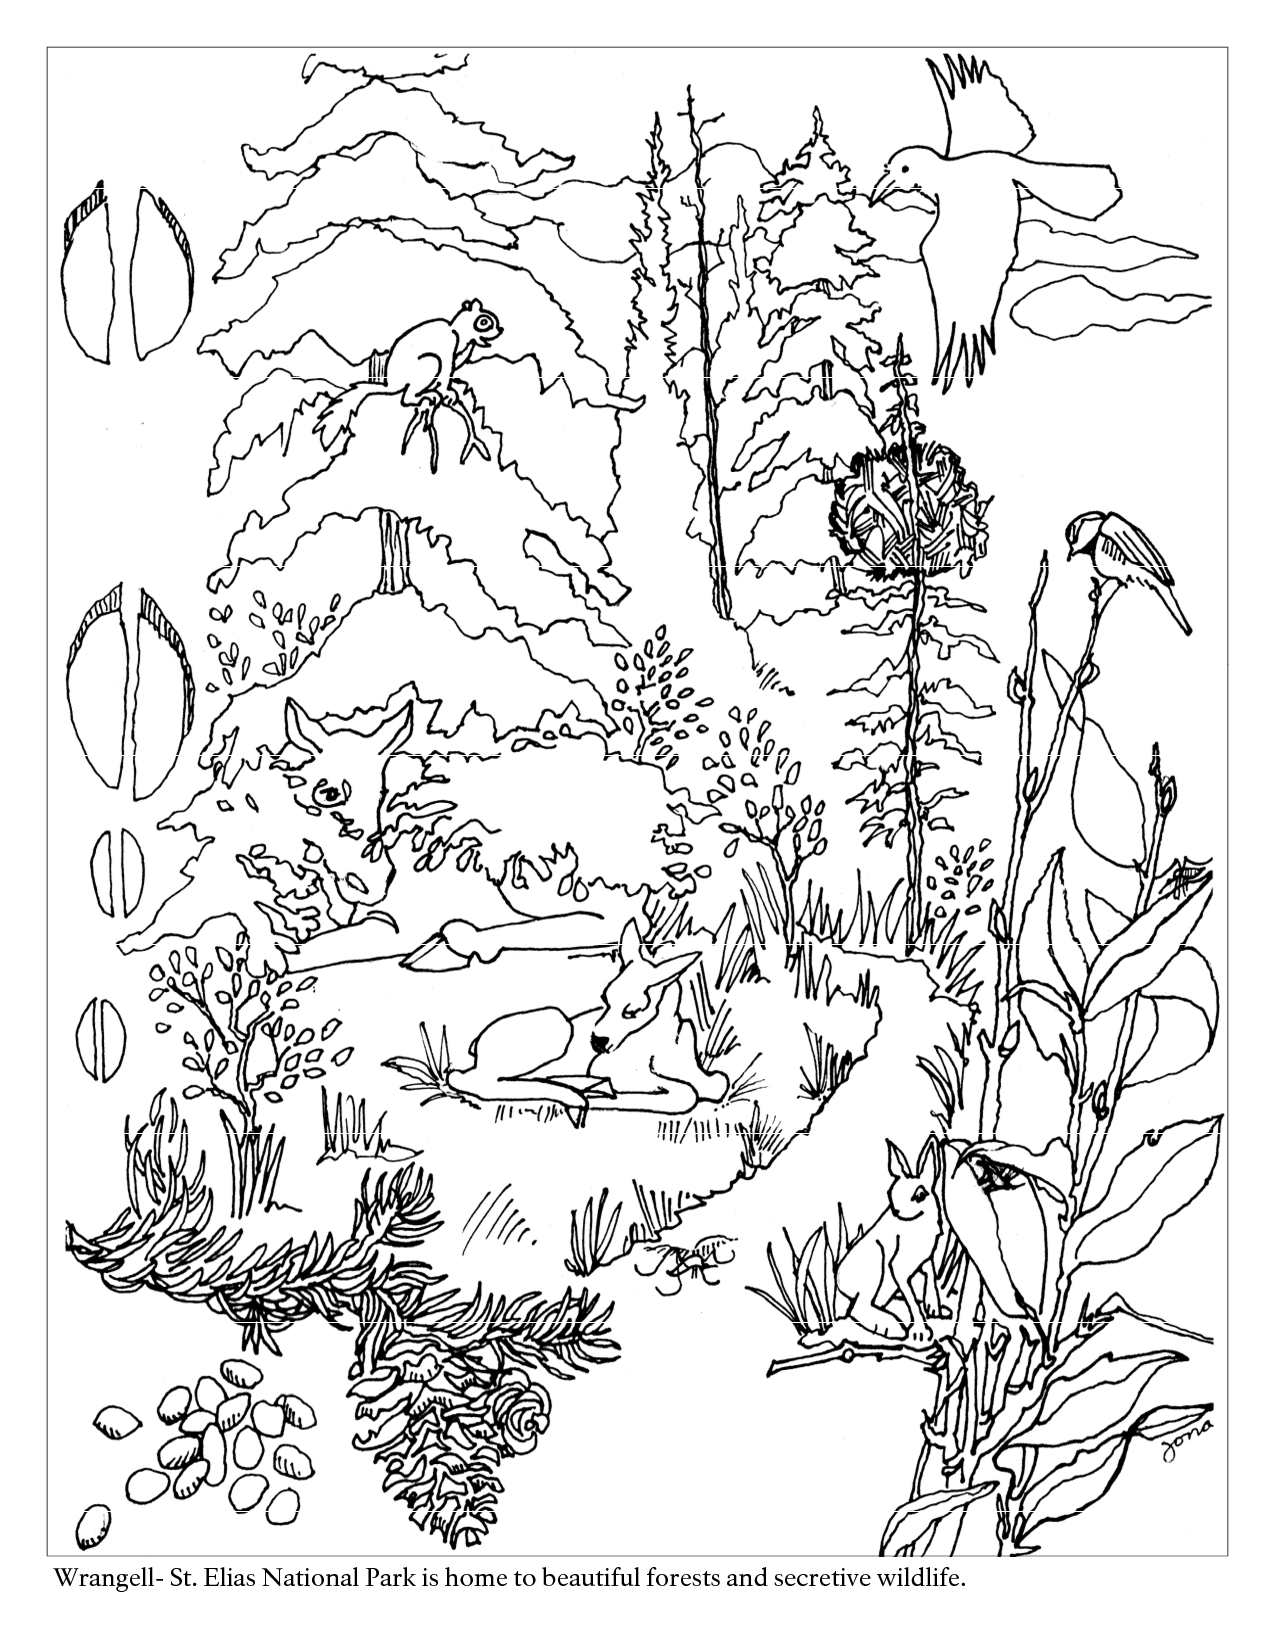 forest coloring page - High Quality Coloring Pages